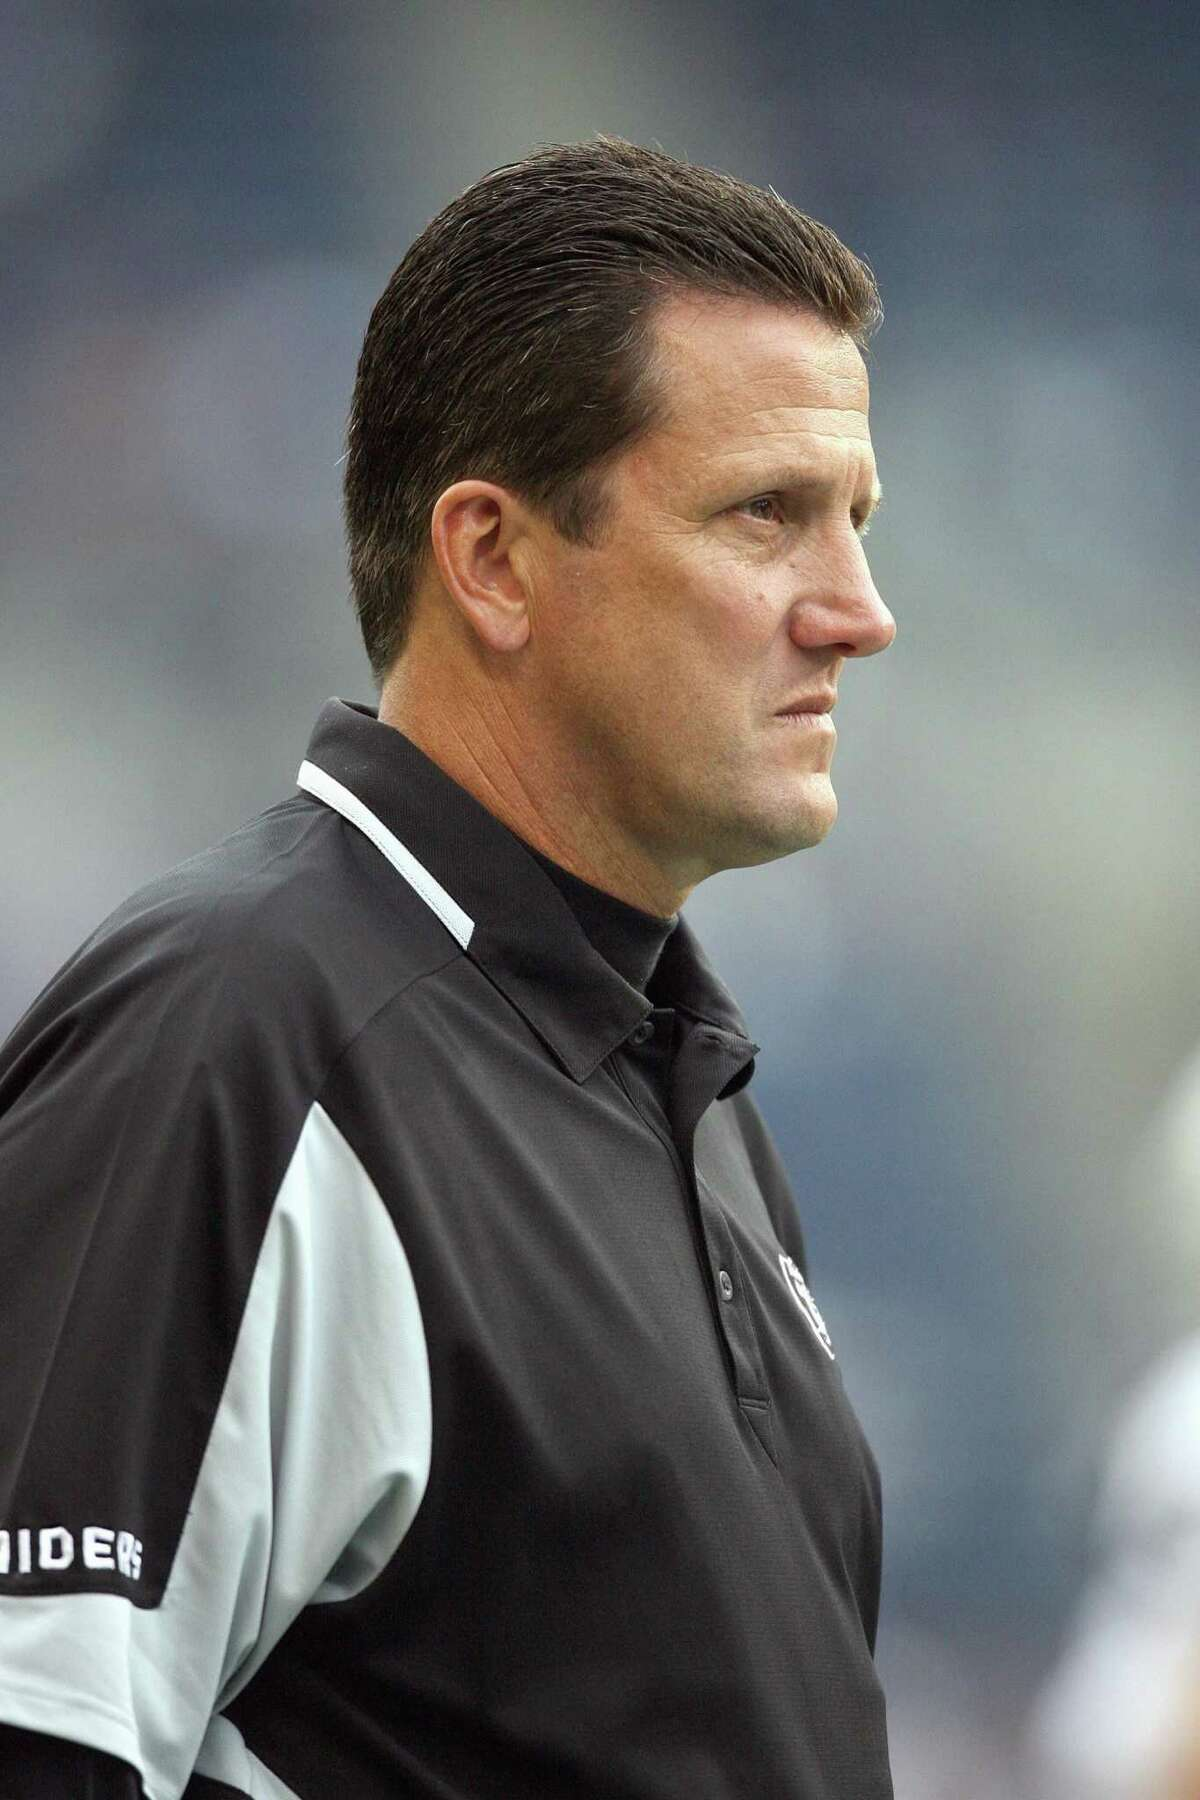 SEATTLE - AUGUST 29: Offensive Coordinator Greg Knapp of the Oakland Raiders looks on during the game against the Seattle Seahawks at Qwest Field on August 29, 2008 in Seattle, Washington. The Seahawks defeated the Raiders 23- 16. (Photo by Otto Greule Jr/Getty Images)